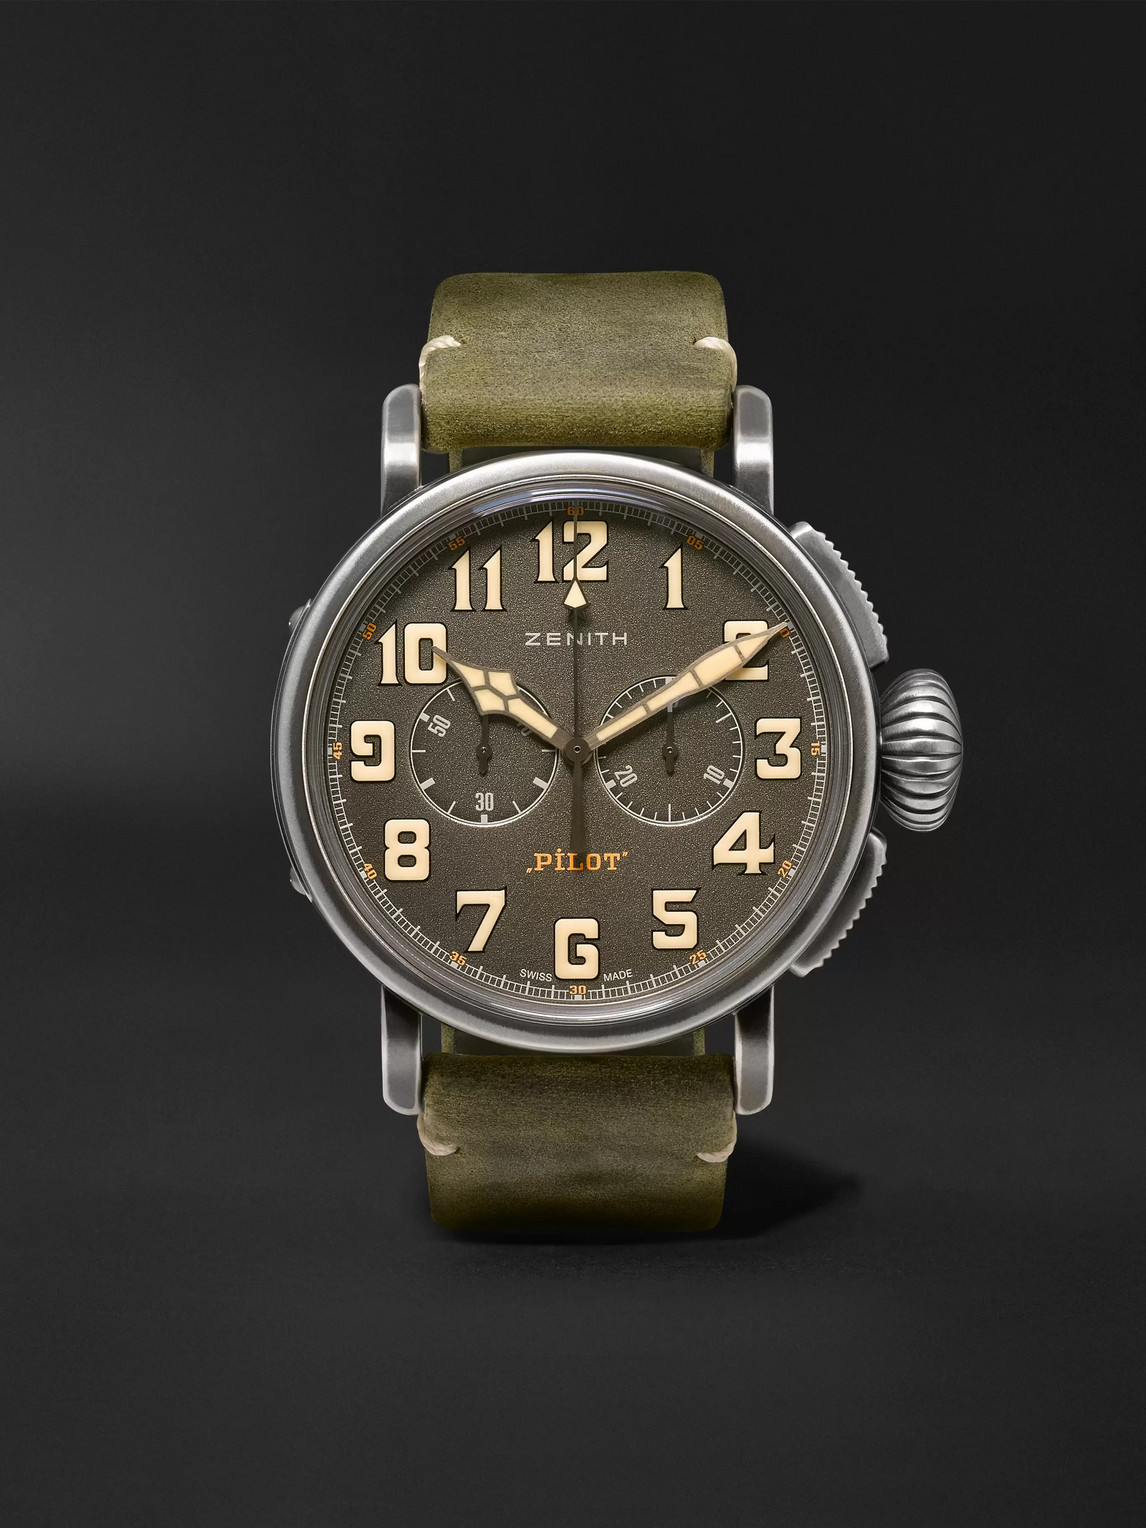 Zenith Heritage Pilot Ton-up 45mm Stainless Steel And Nubuck Watch, Ref. No. 11.2430.4069/21.c773 In Green